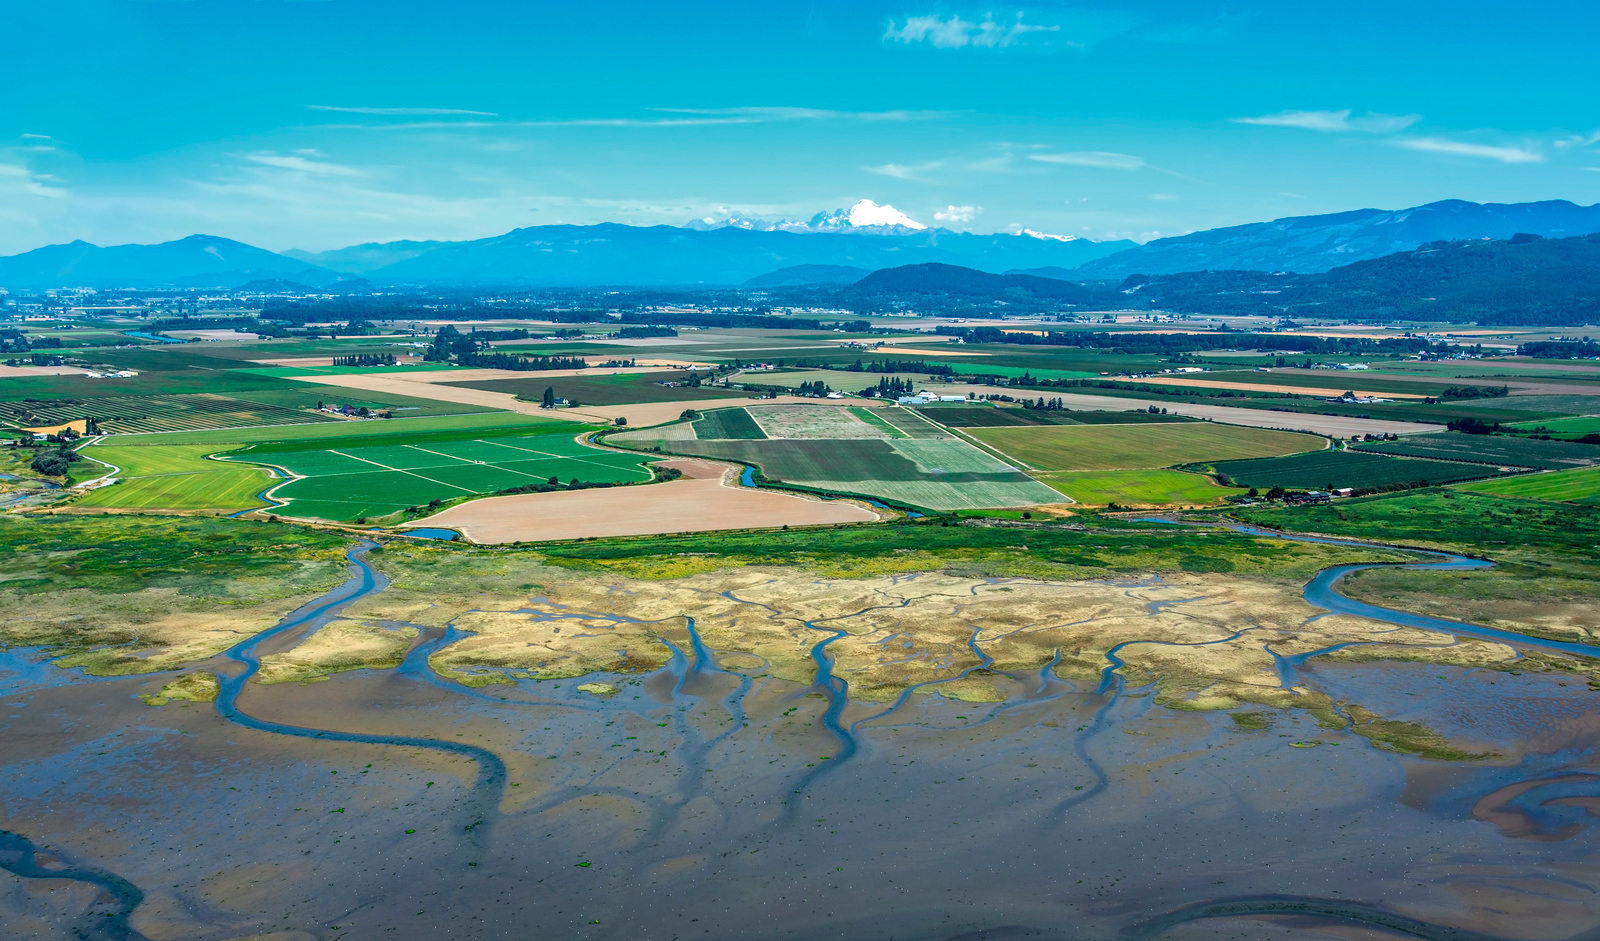 Our floodplains provide clean water, bountiful harvests and places to make our homes. Floodplains by Design helps communities manage rivers at a system scale - an approach legislators supported with the program's highest-ever appropriation this year. Photo by Marlin Greene.